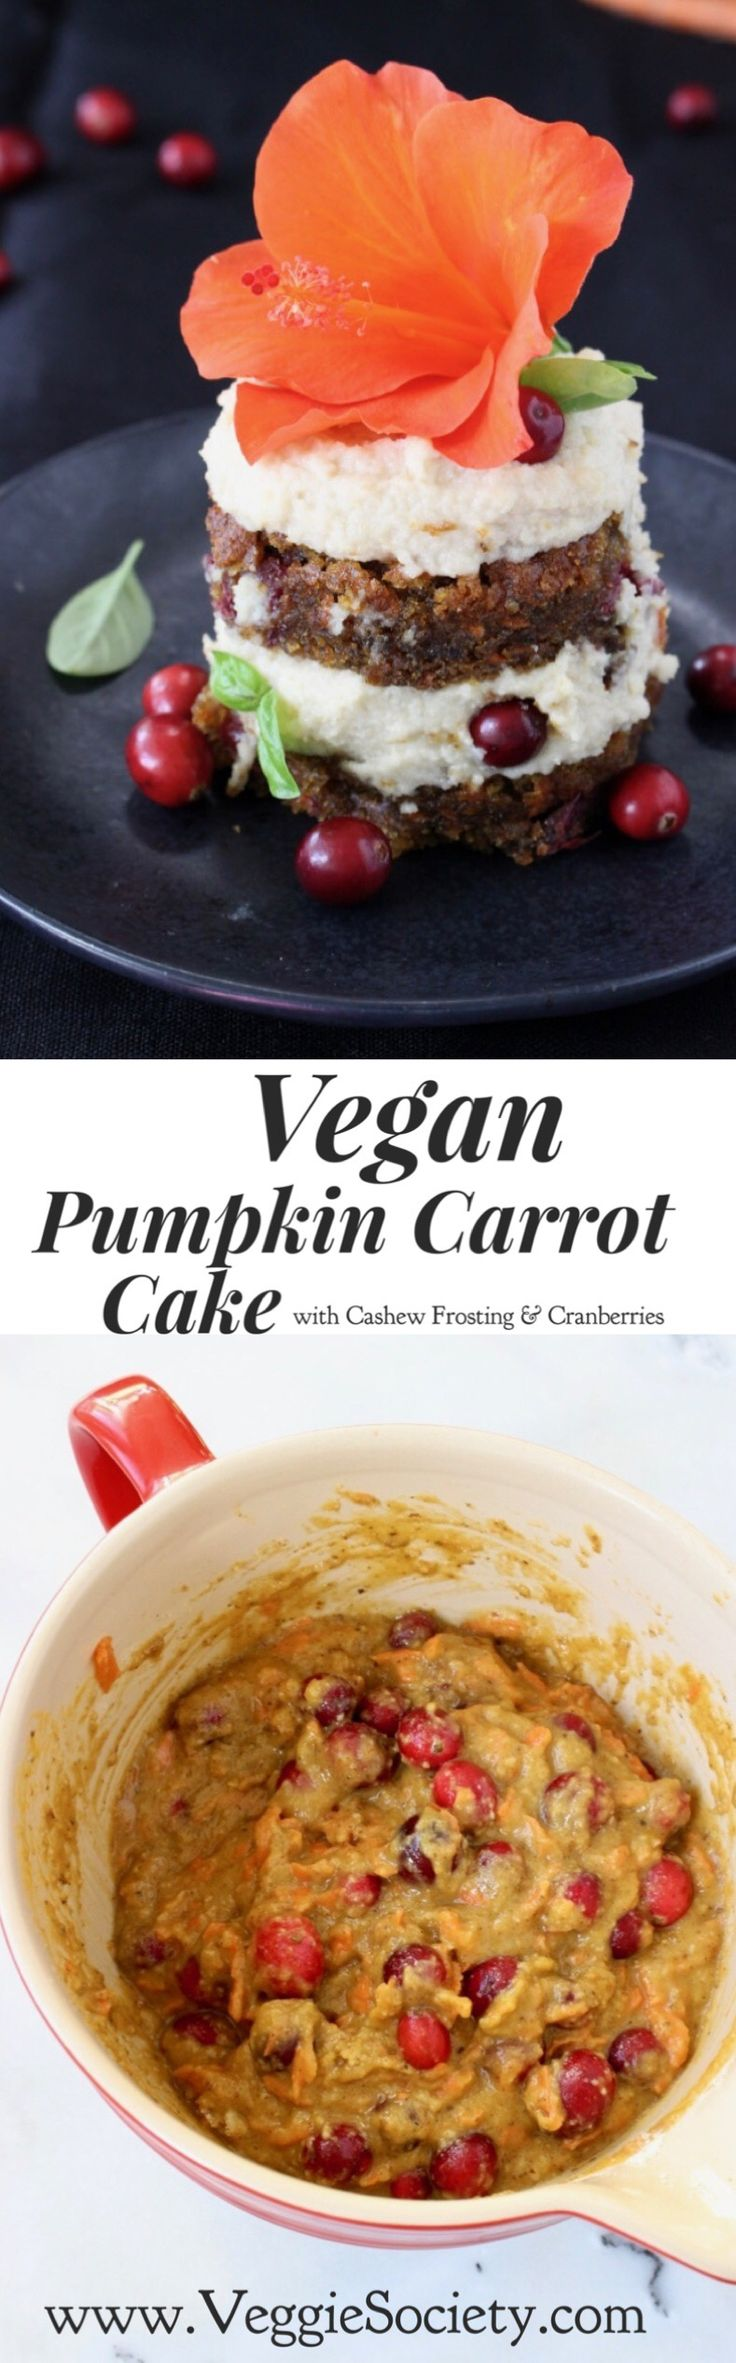 Vegan Pumpkin Carrot Cake Recipe with Cashew Frosting and Cranberries. No sugar, no eggs, no butter. Dairy free and good for you   VeggieSociety.com @VeggieSociety